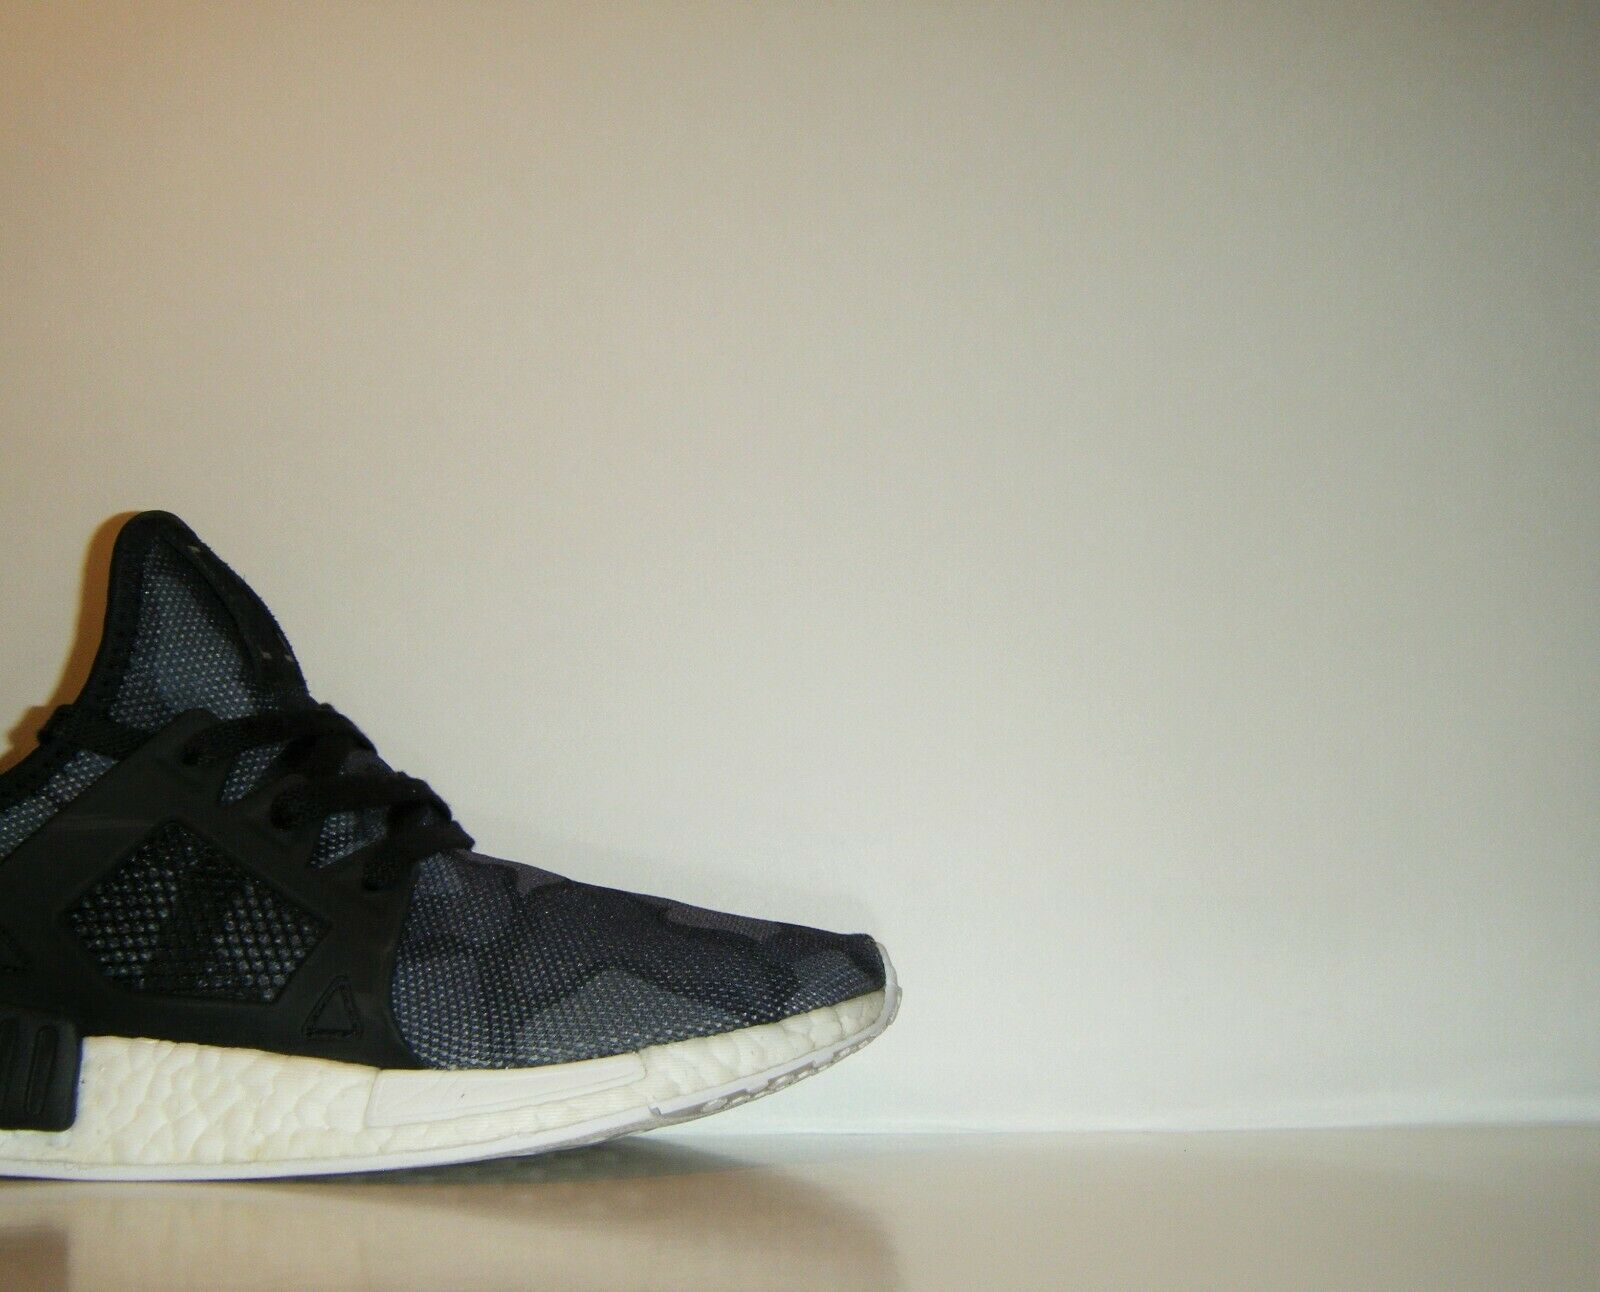 2017 Adidas NMD XR1 Boost CAMO Black Grey White BA7231 Sz. 7 Ultra R1 PK